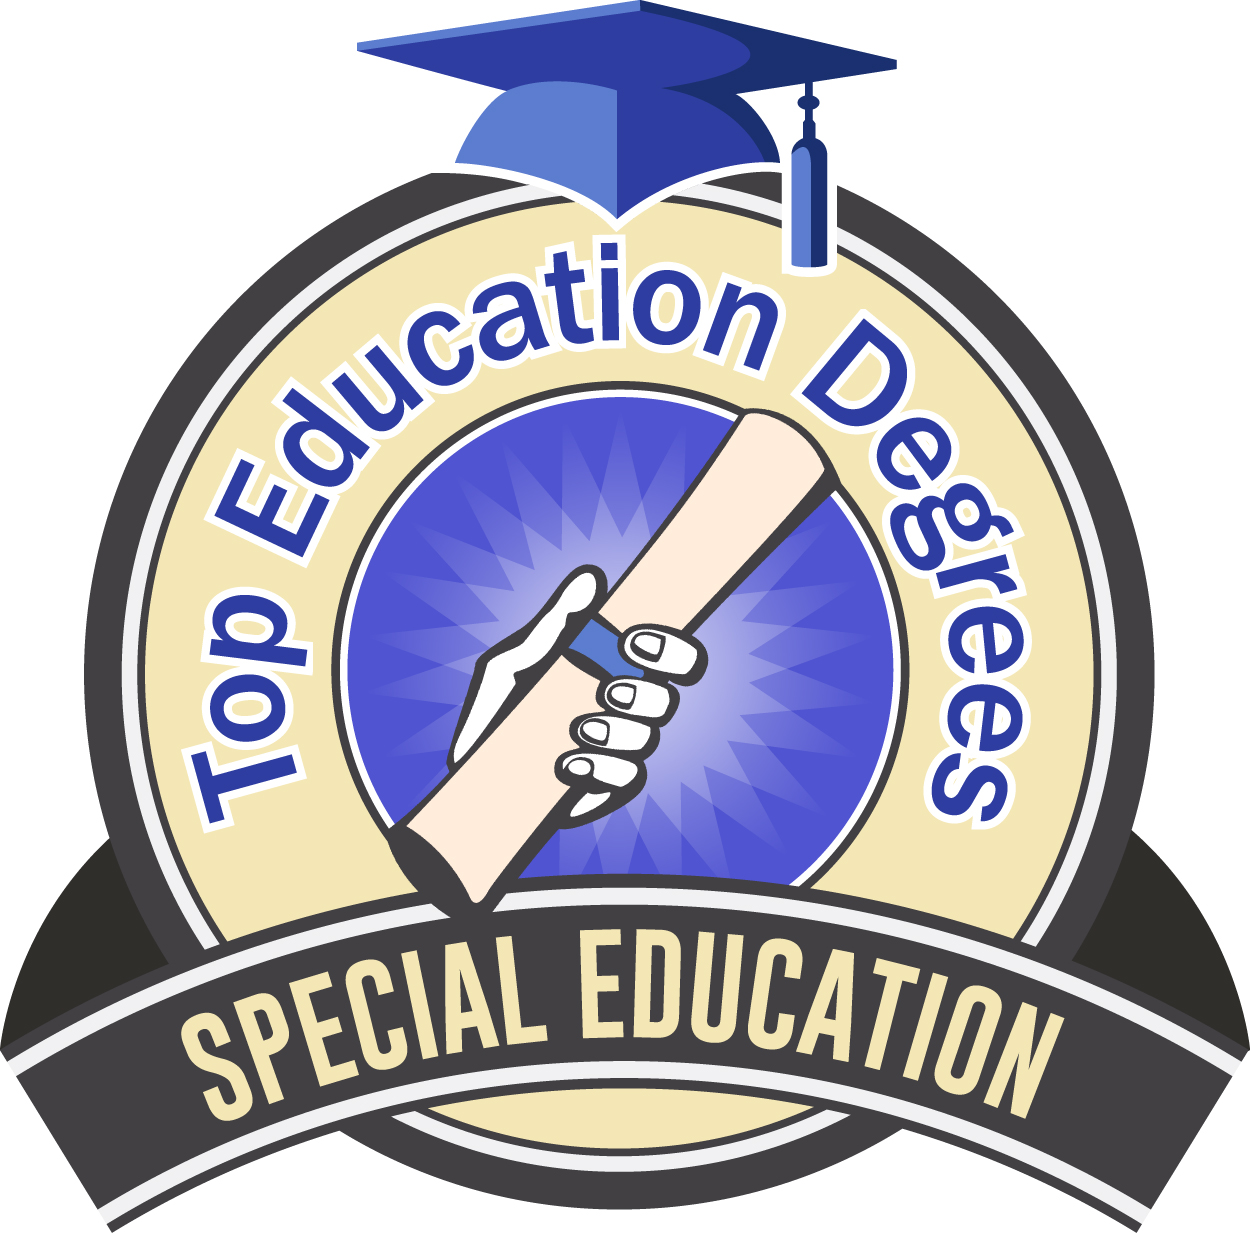 50 Most Affordable Online Masters In Special Education. Air Conditioning Repair San Jose. How To Buy Shares Online In India. Driving Insurance Quotes Moving Companies Okc. Average Pay Dental Hygienist. Free Driveaway Insurance Military Travel Card. Send International Fax Online. Masters Sports Management Online. Commercial Baby Changing Tables